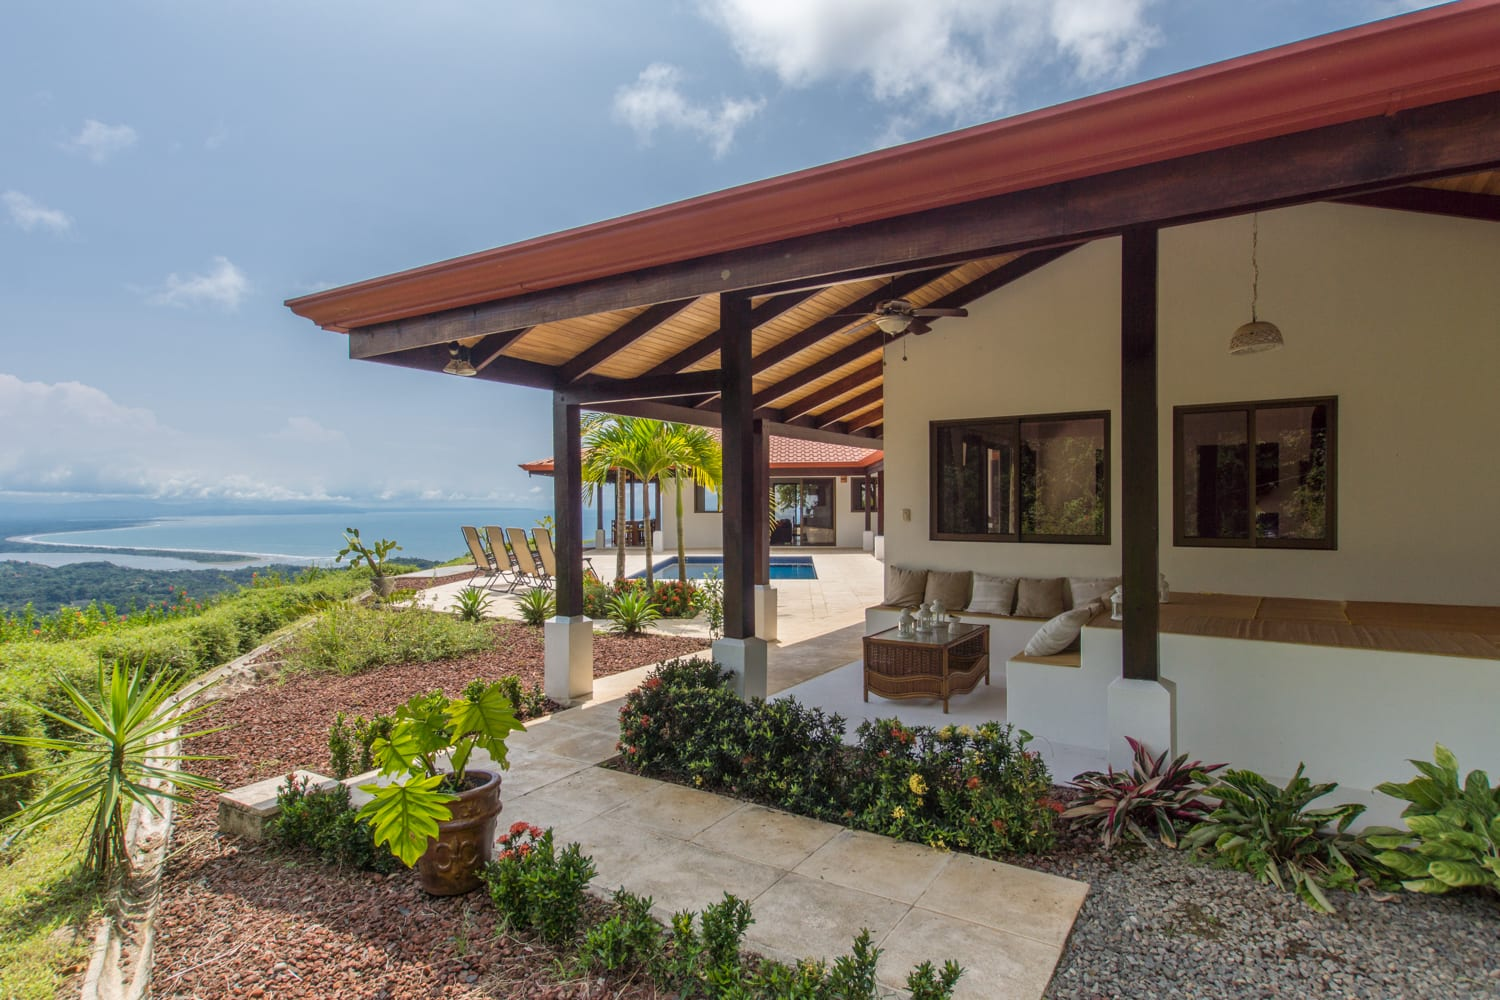 Acres 3 bedroom modern spanish hacienda with pool - House with a view ...